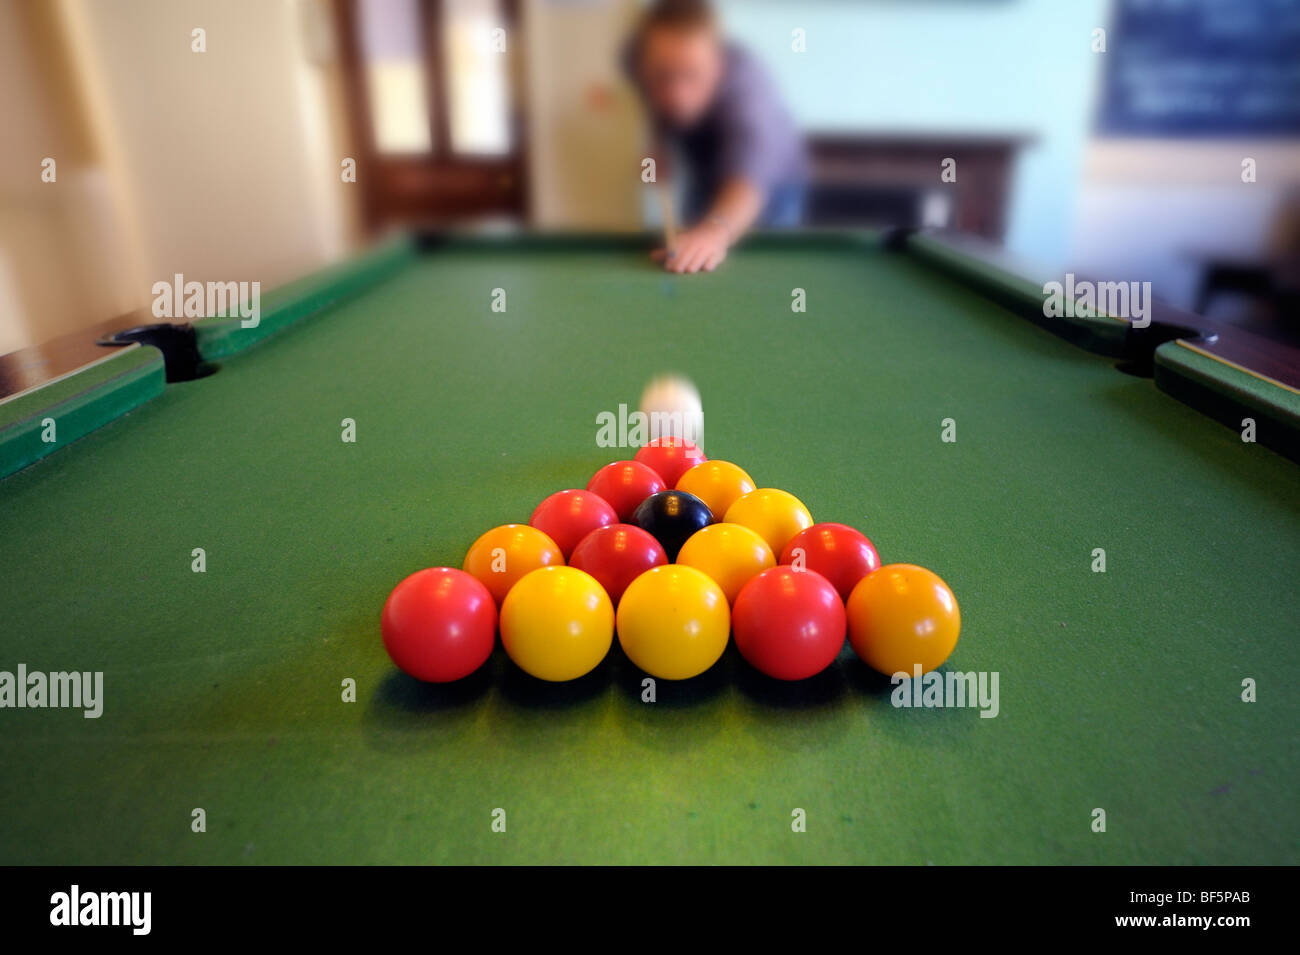 Taking the break in a game of pool - Stock Image